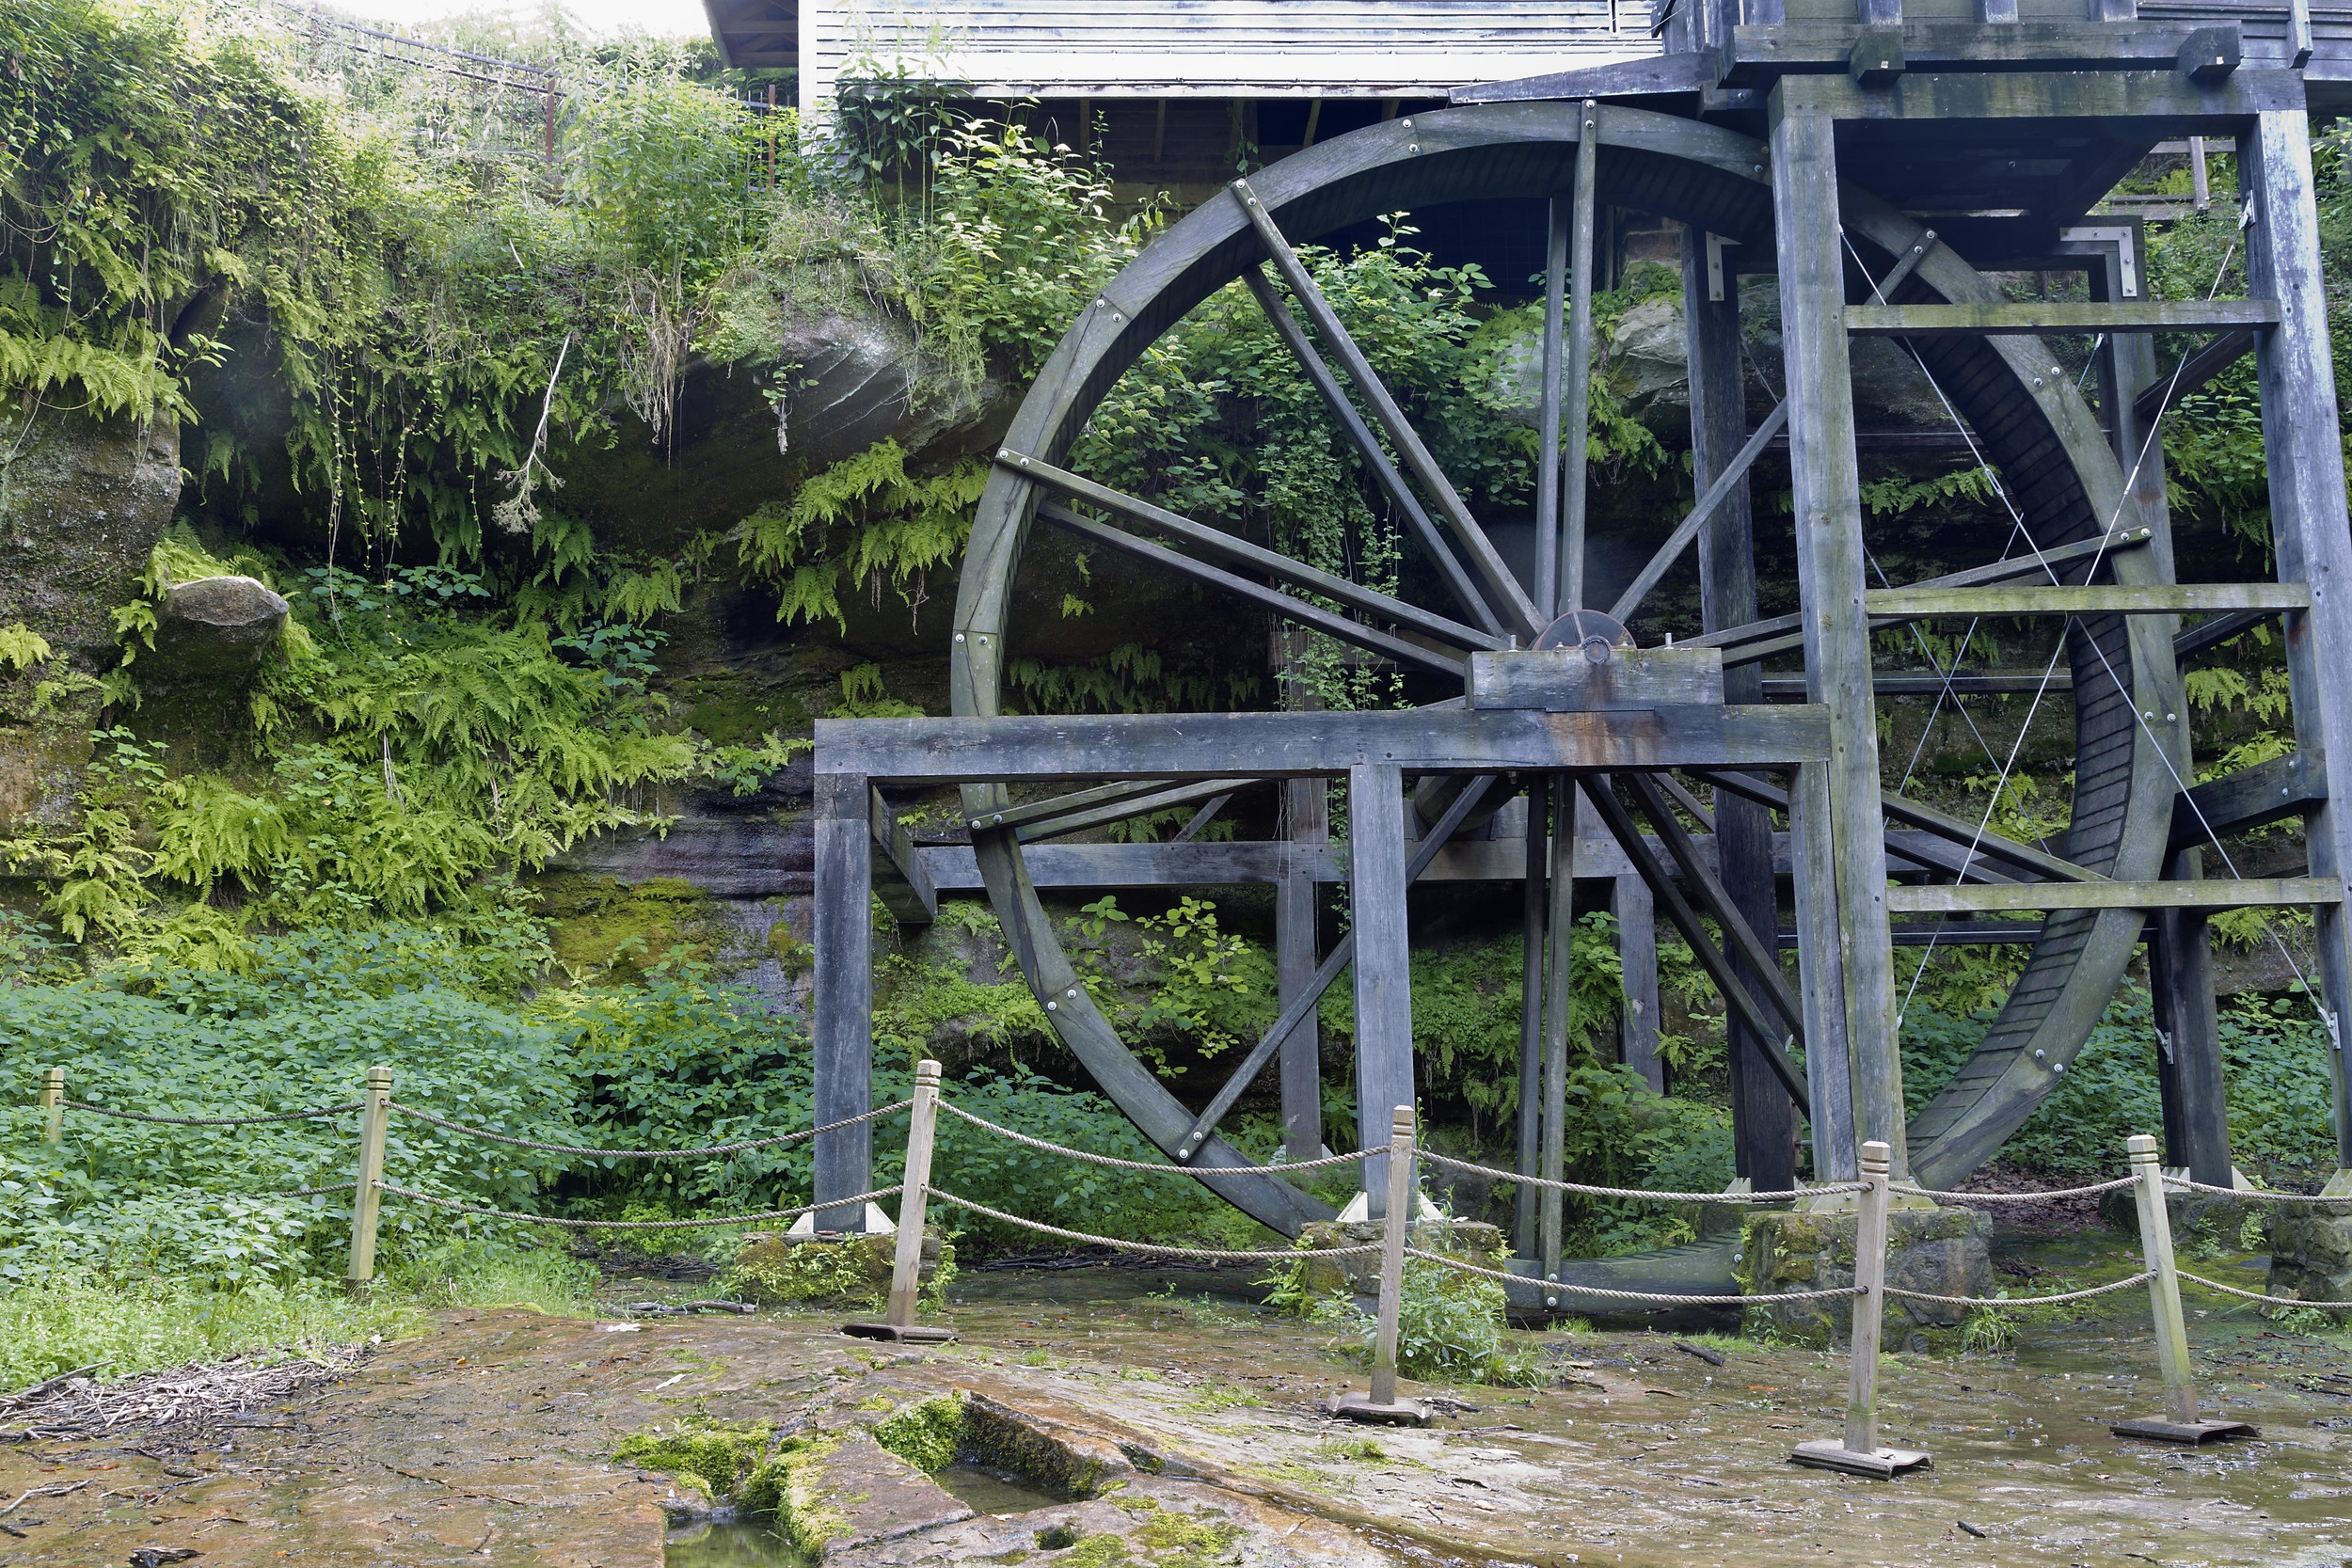 Constructed in 2012, this 26 foot water wheel is a replica of the original wheel used.